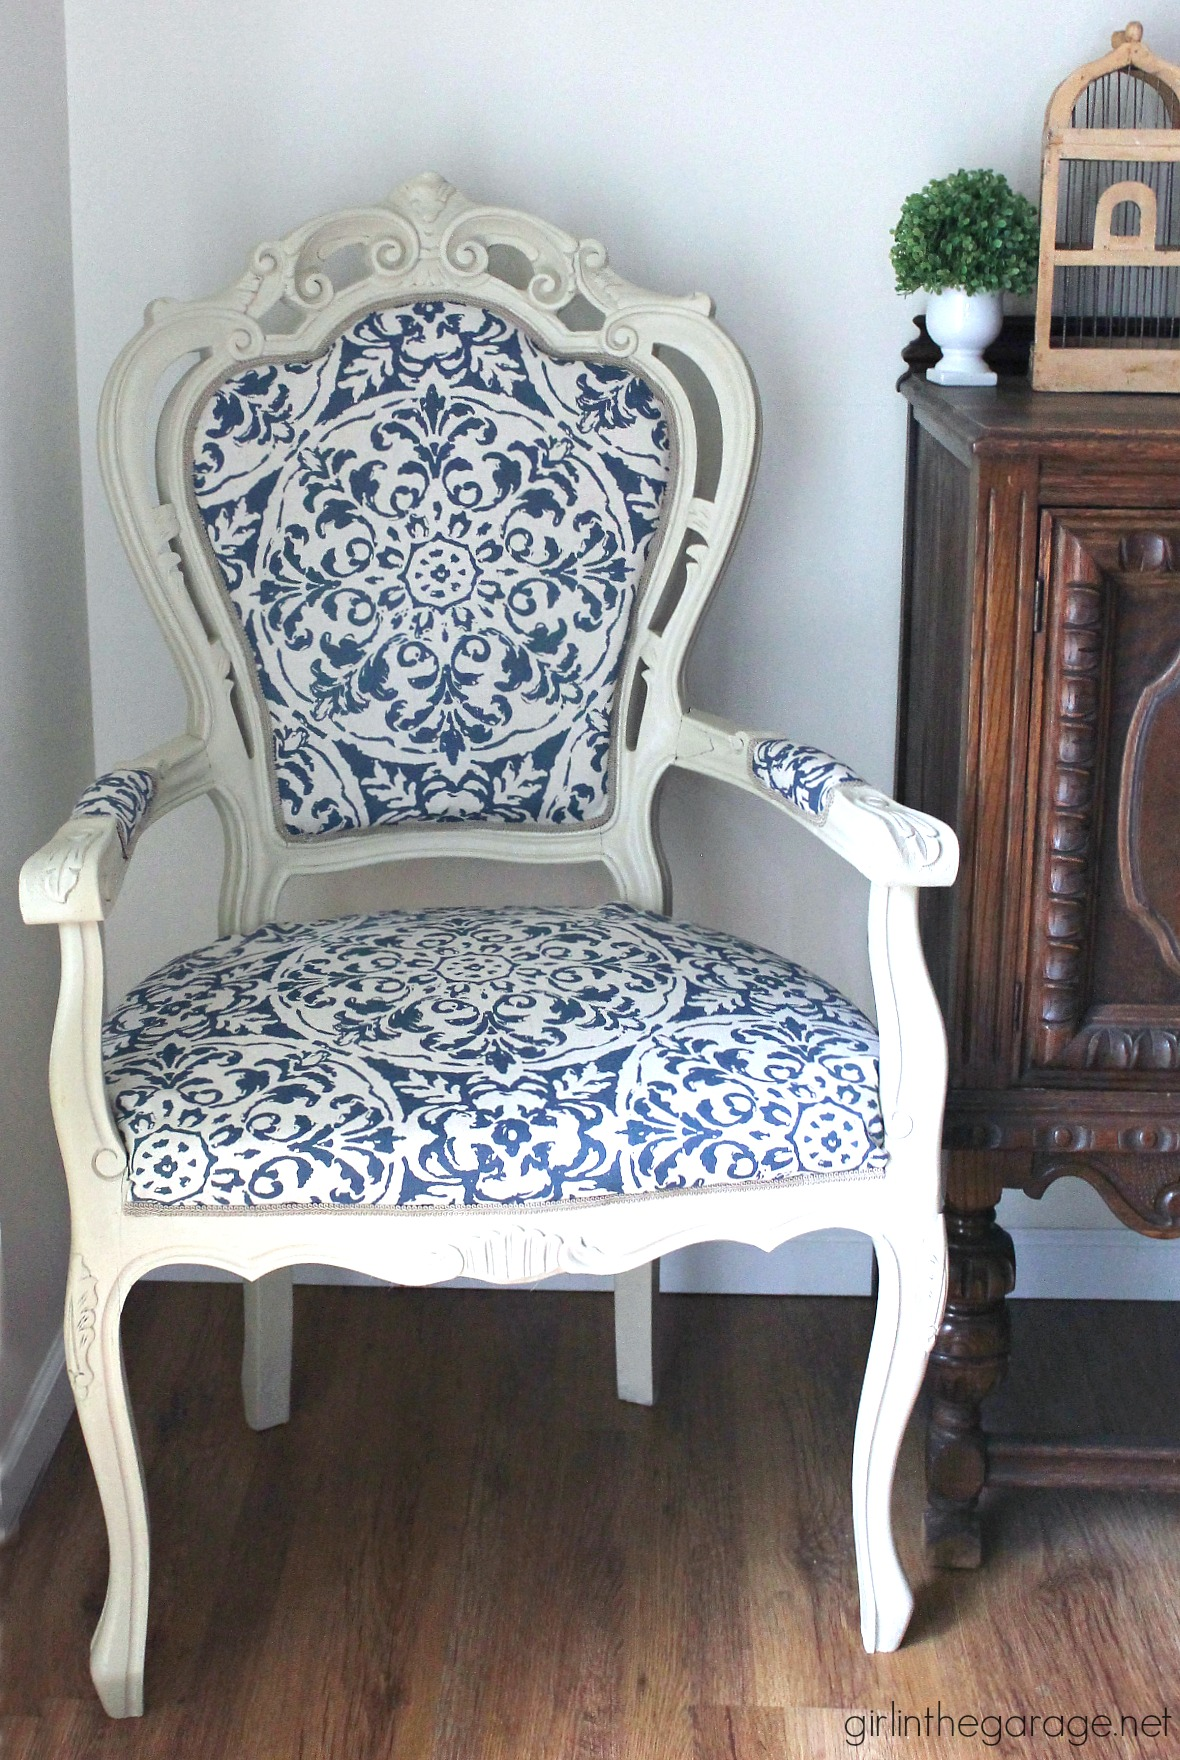 The Throne Chair - DIY Reupholstered Chair Makeover - And ...